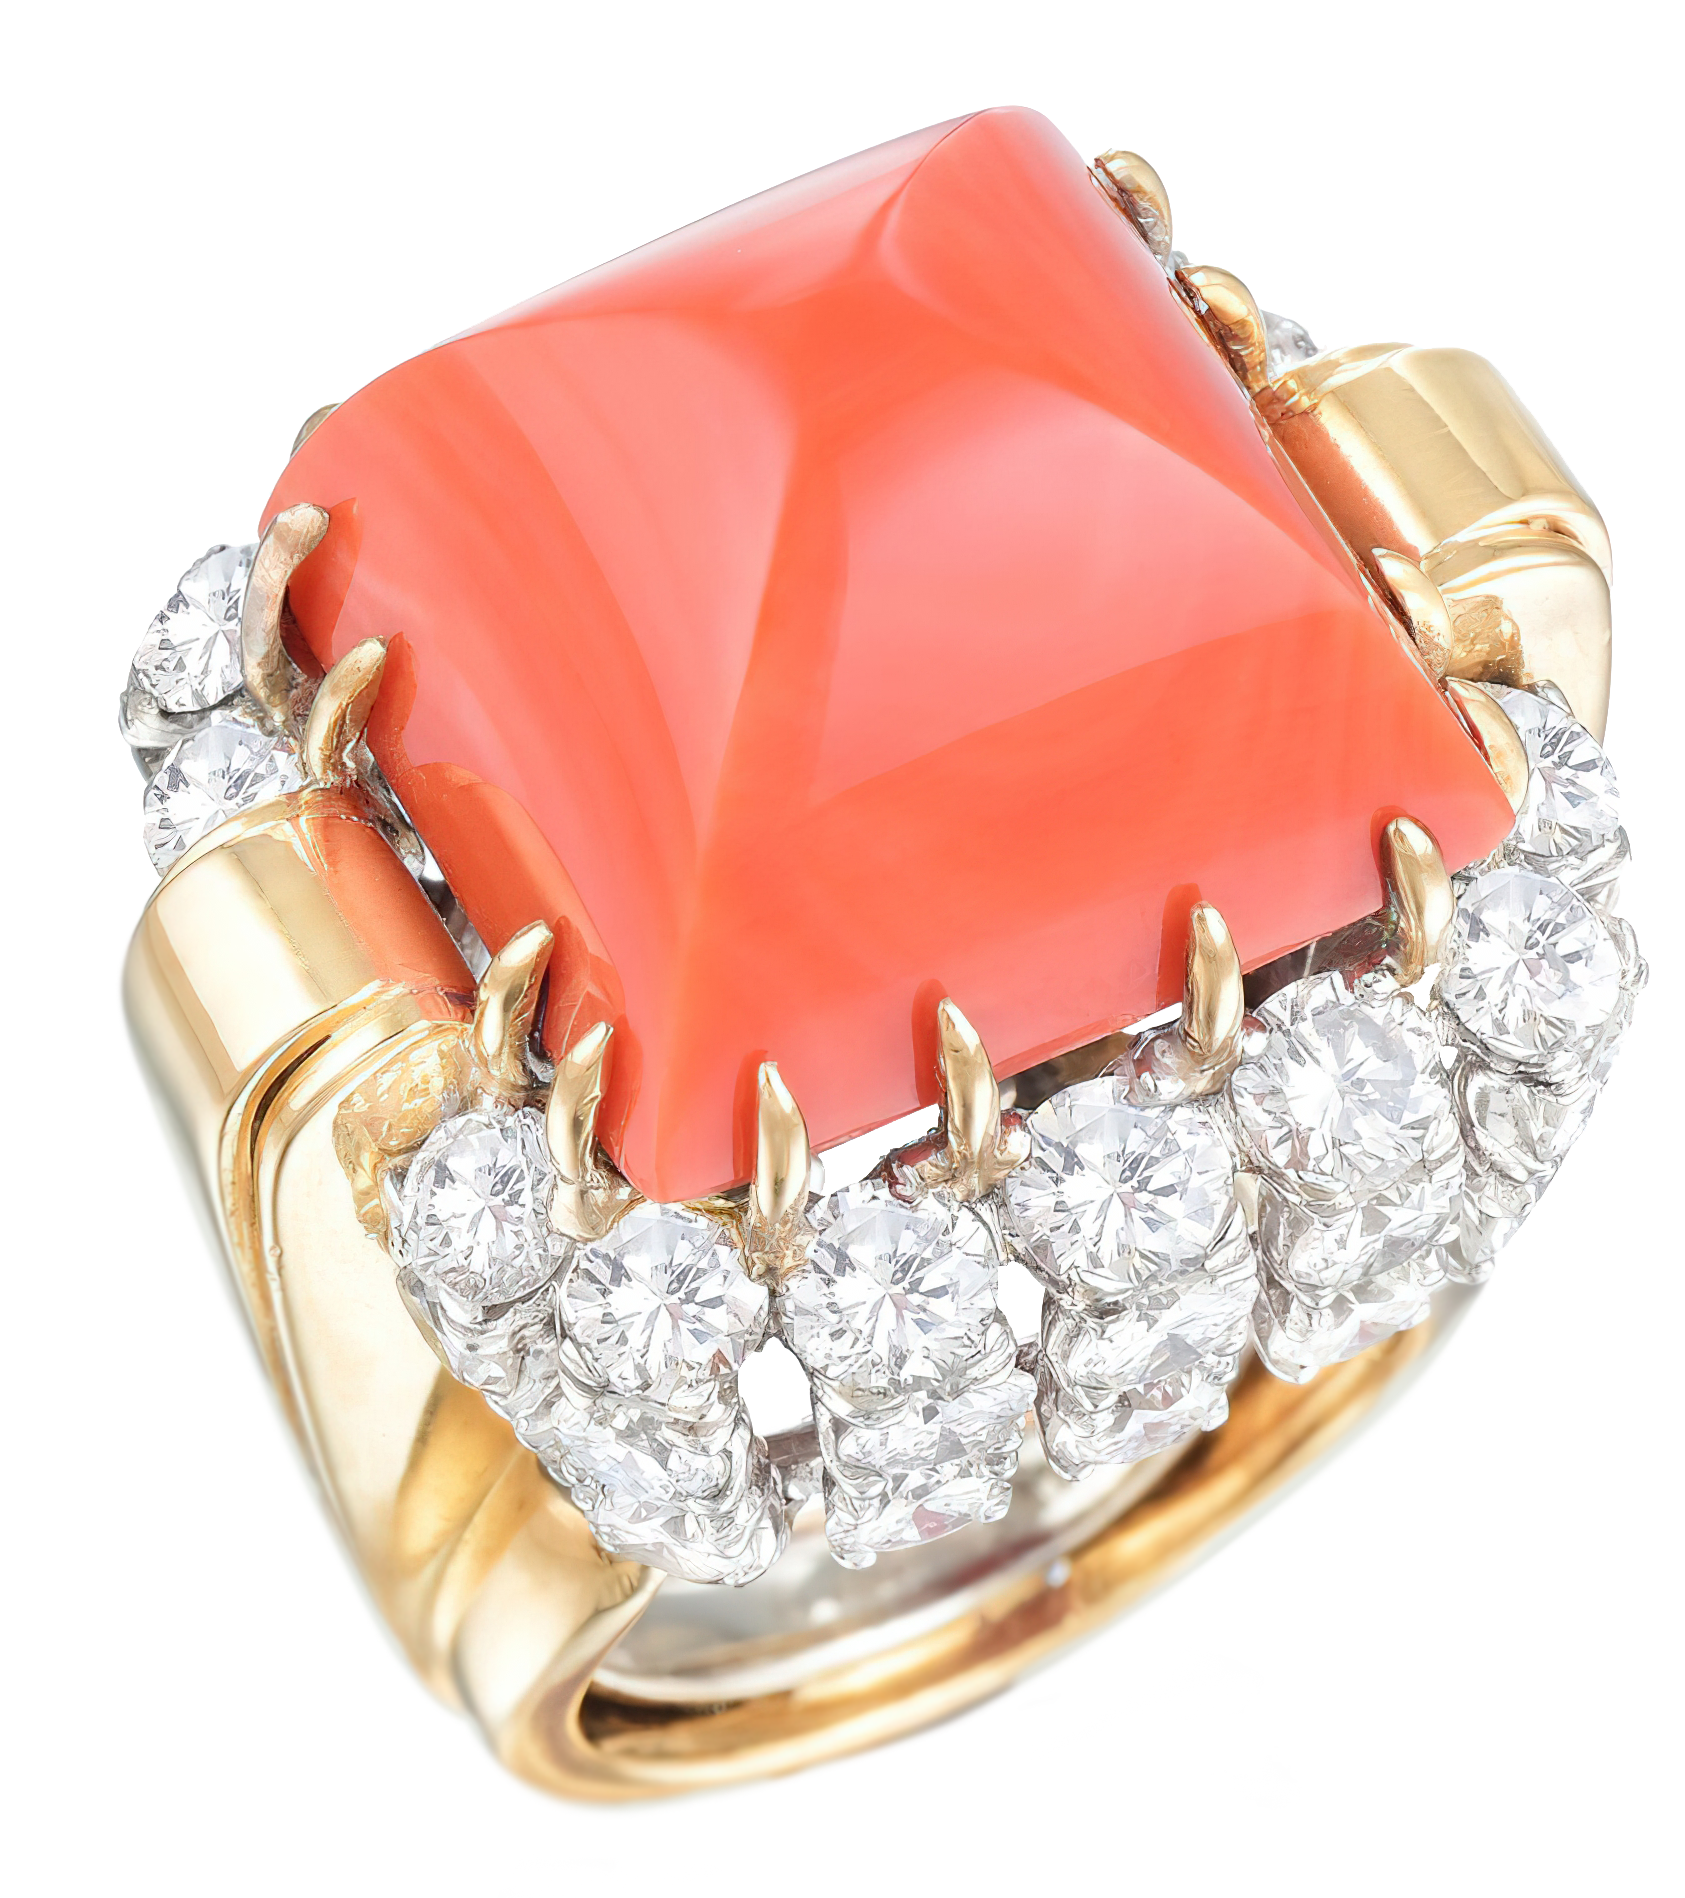 coral-and-diamond-ring-webb-92d7